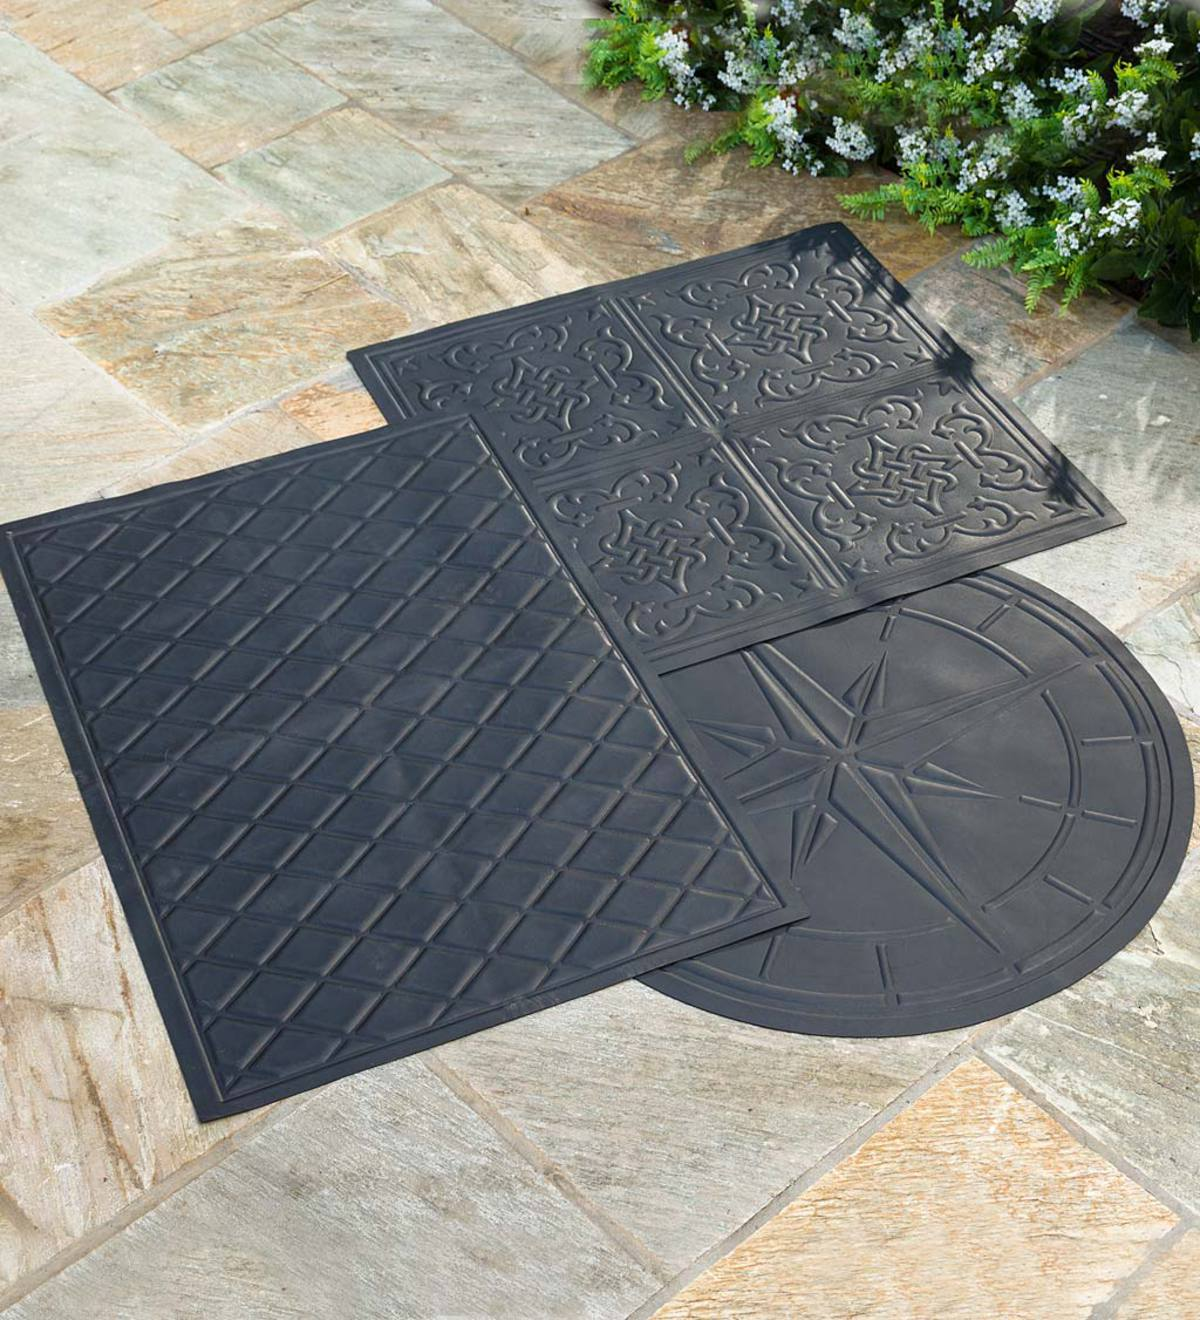 Flame Resistant Protective Mat For Fire Pit And Grill